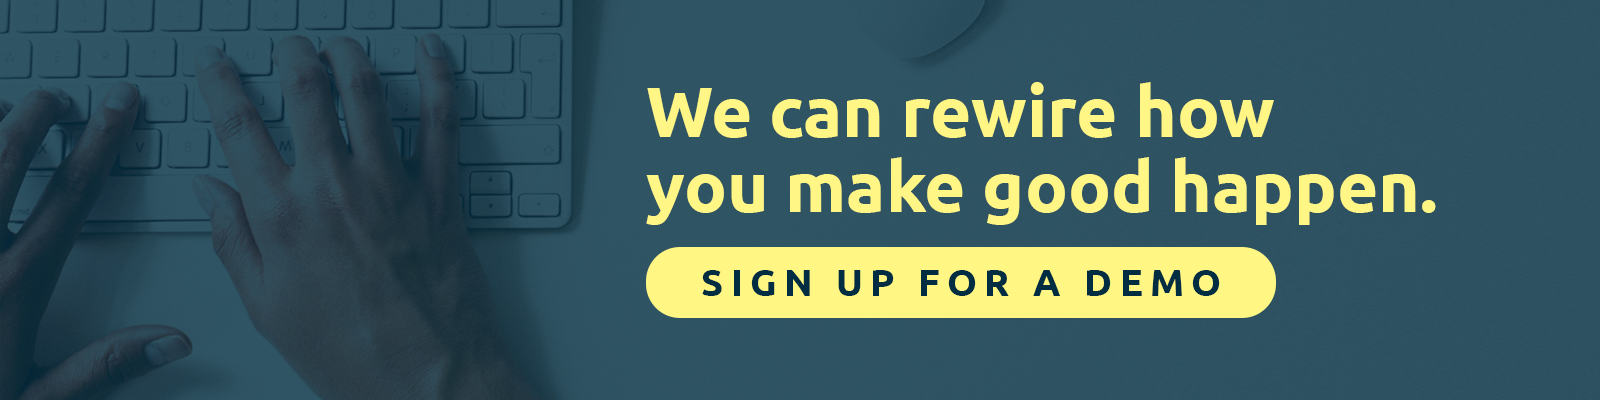 We can rewire how you make good happen. Sign up for a demo to learn more!